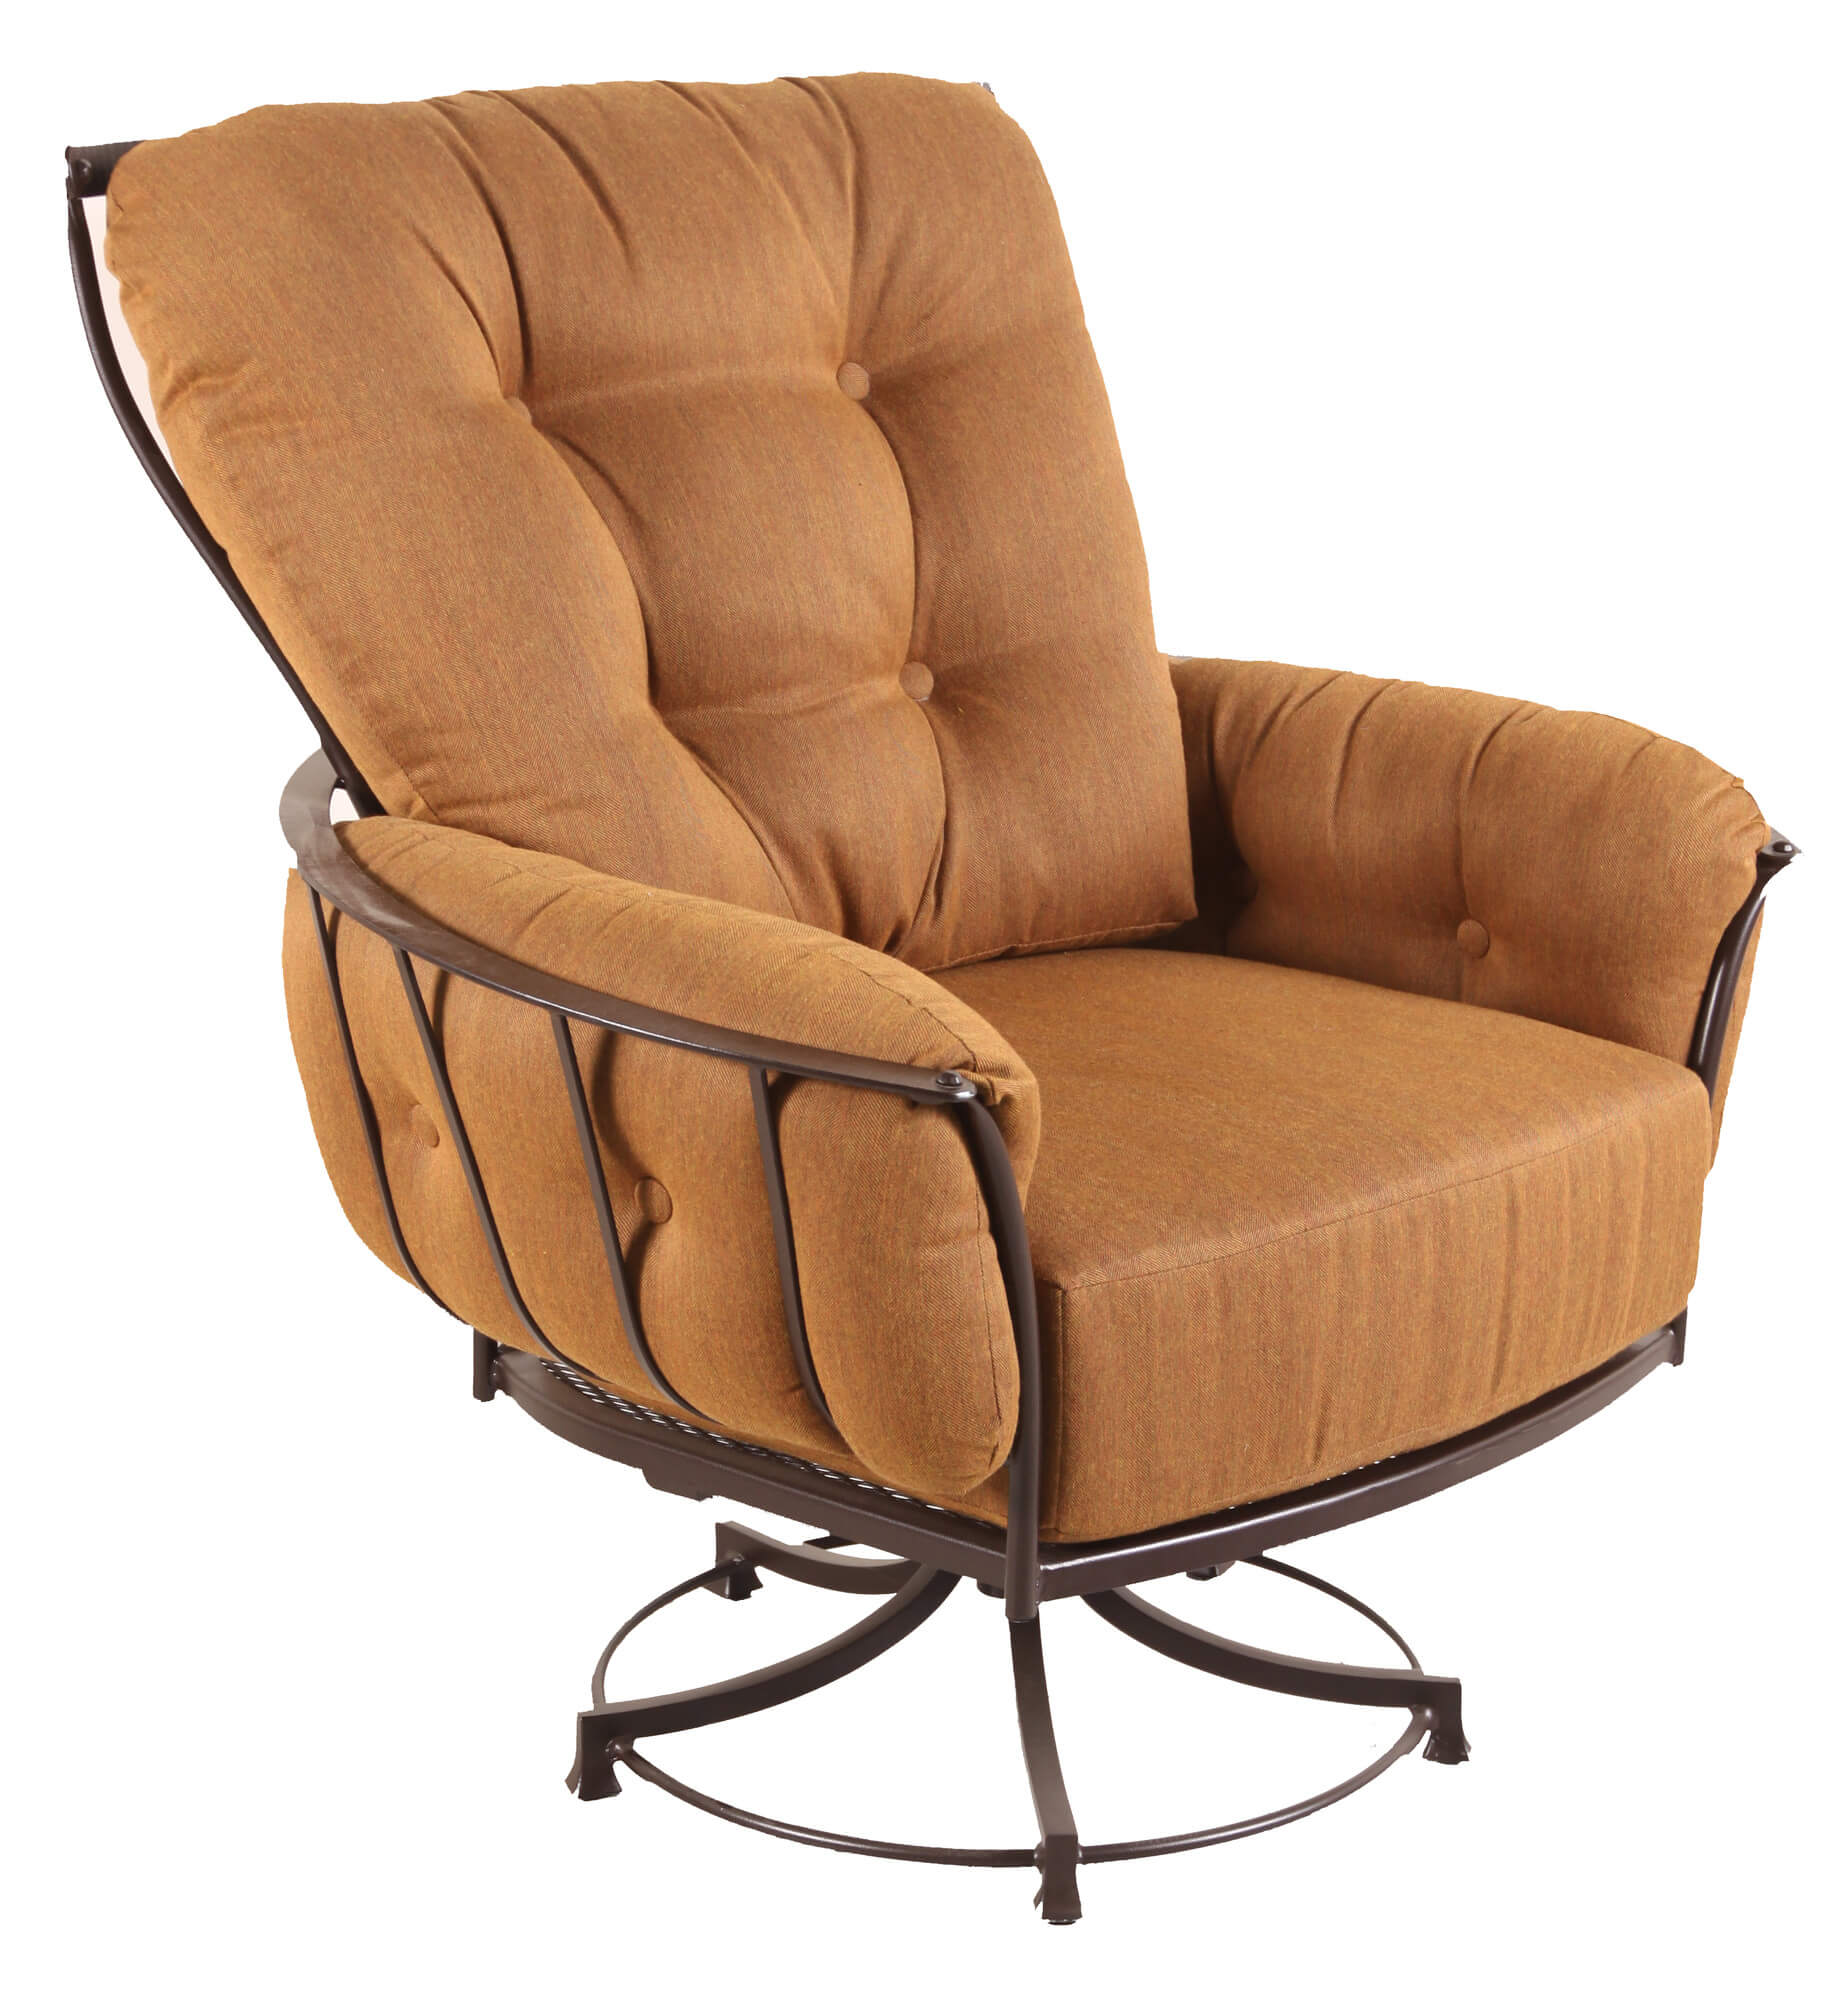 For a more extreme variation on the club chair, we bring you this swivel design, metal frame model with button tufted cushioning.